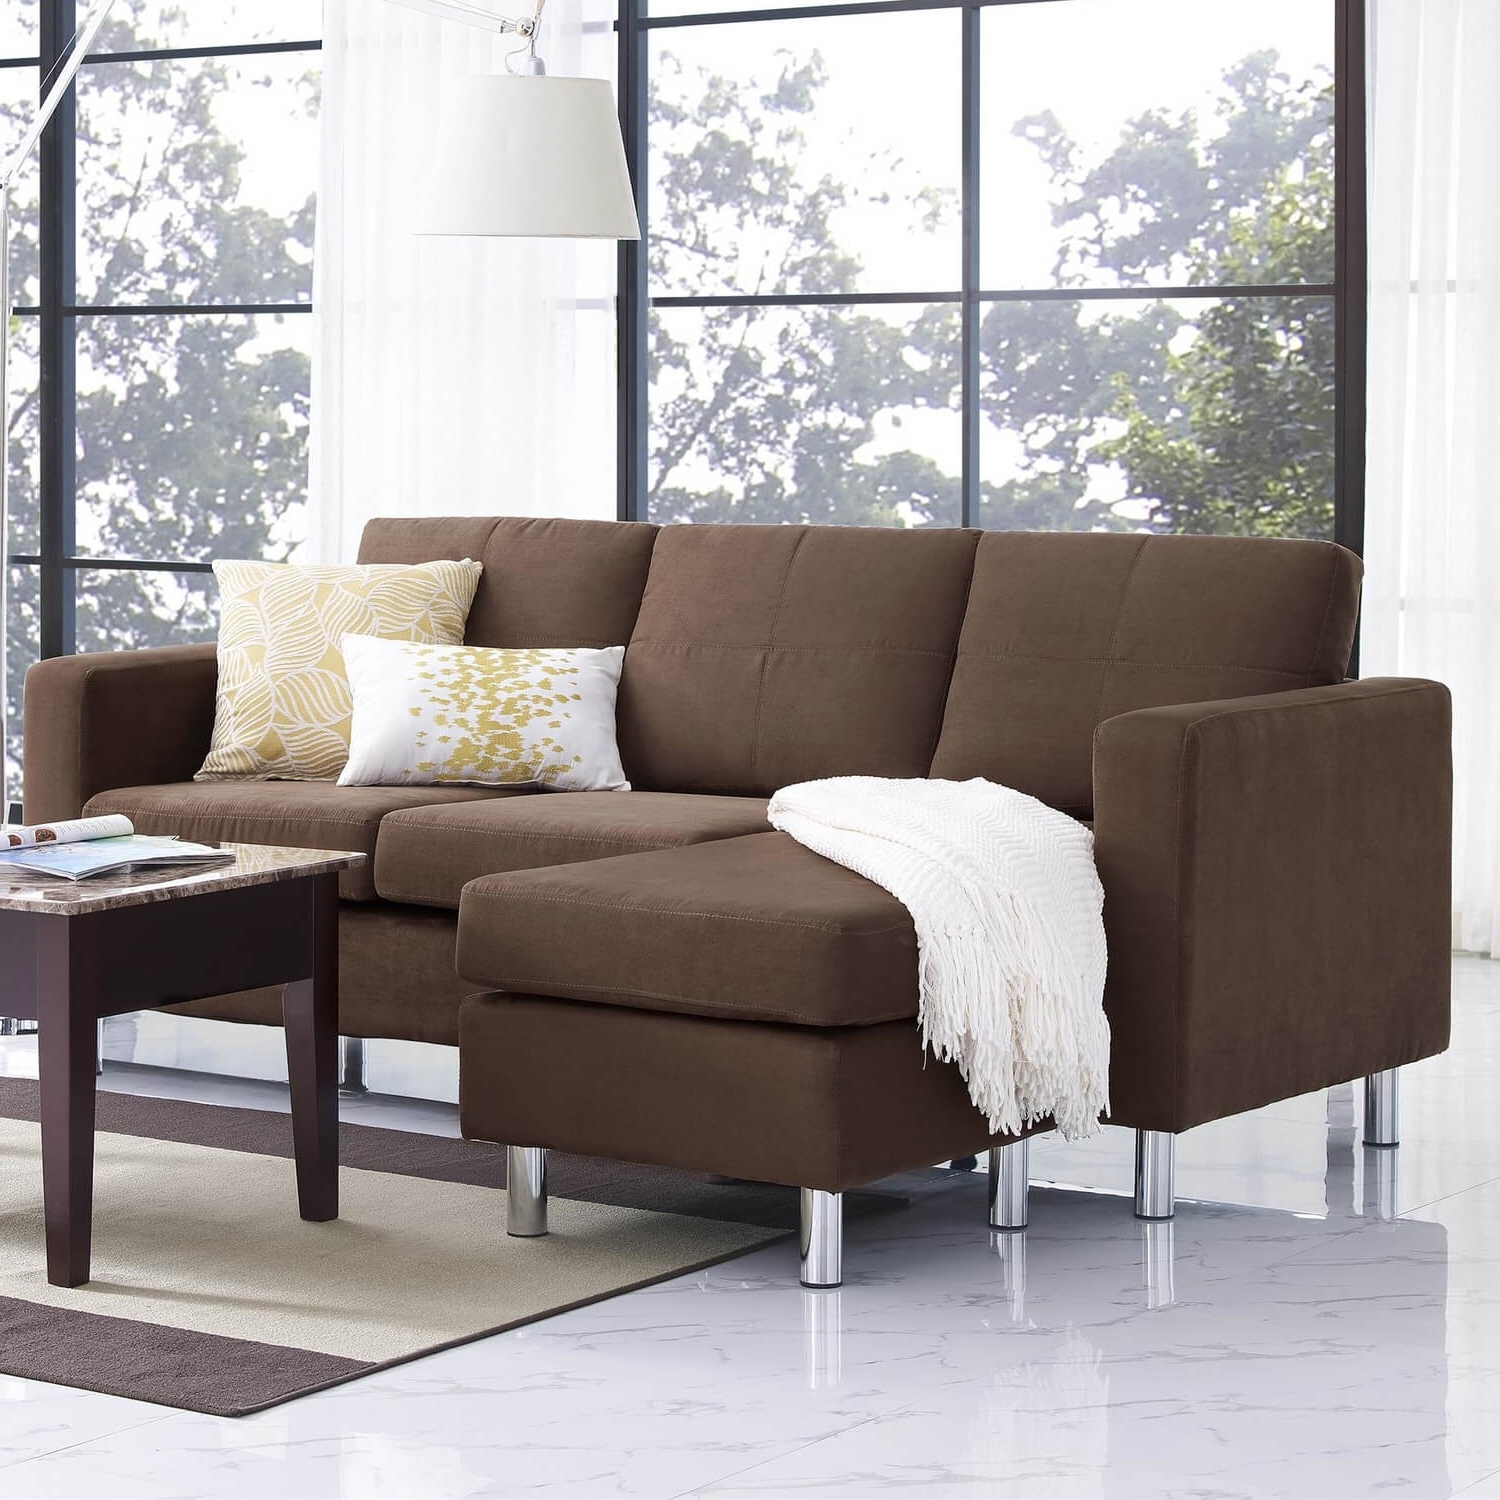 Sectional Sofas In Charlotte Nc Inside Most Popular Ethan Allen Charlotte Nc Modern Italian Leather Sofa Ethan Allen (View 11 of 15)